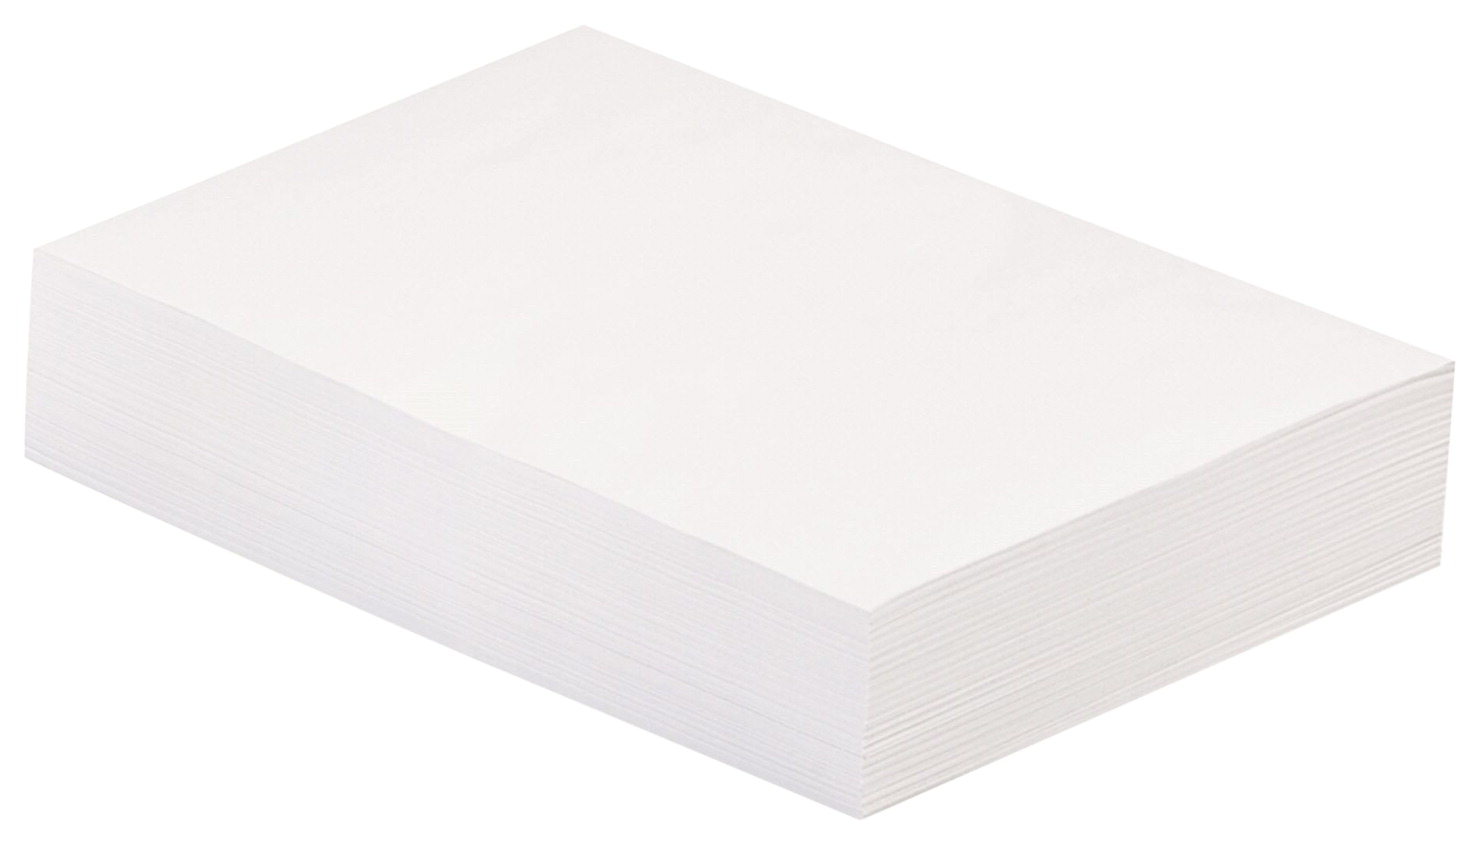 Ucreate Mixed-Media Paper, 80 lb., 9 x 12 Inches, Natural White, 500 Sheets